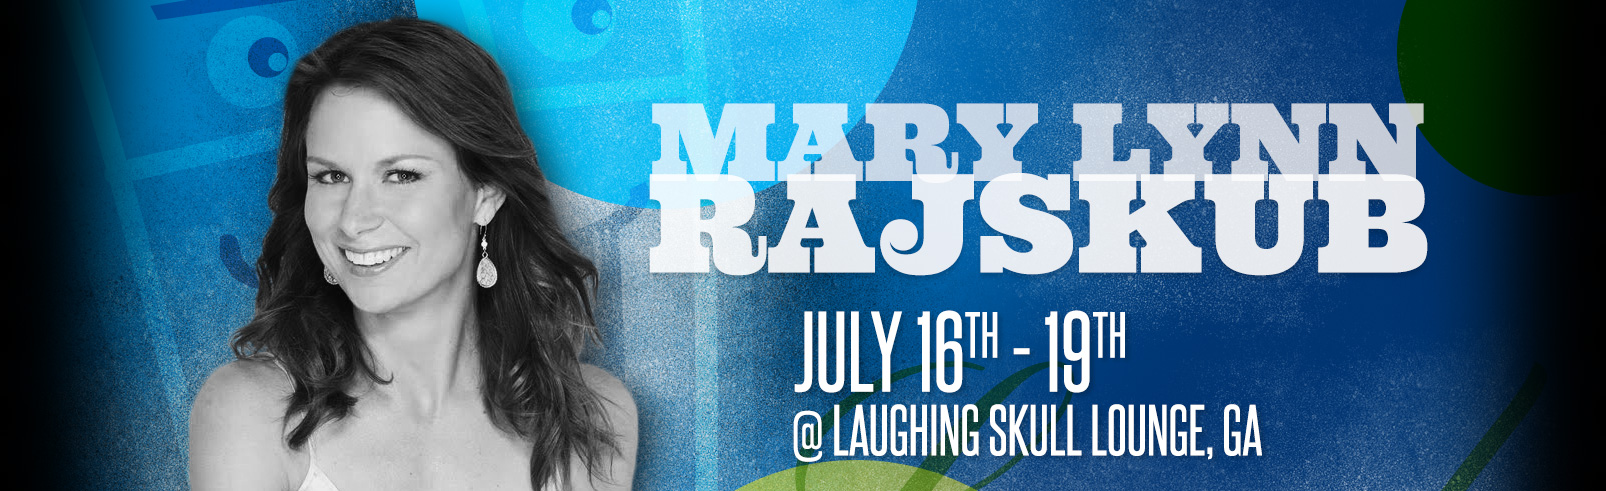 Mary Lynn Rajskub @ Laughing Skull Lounge